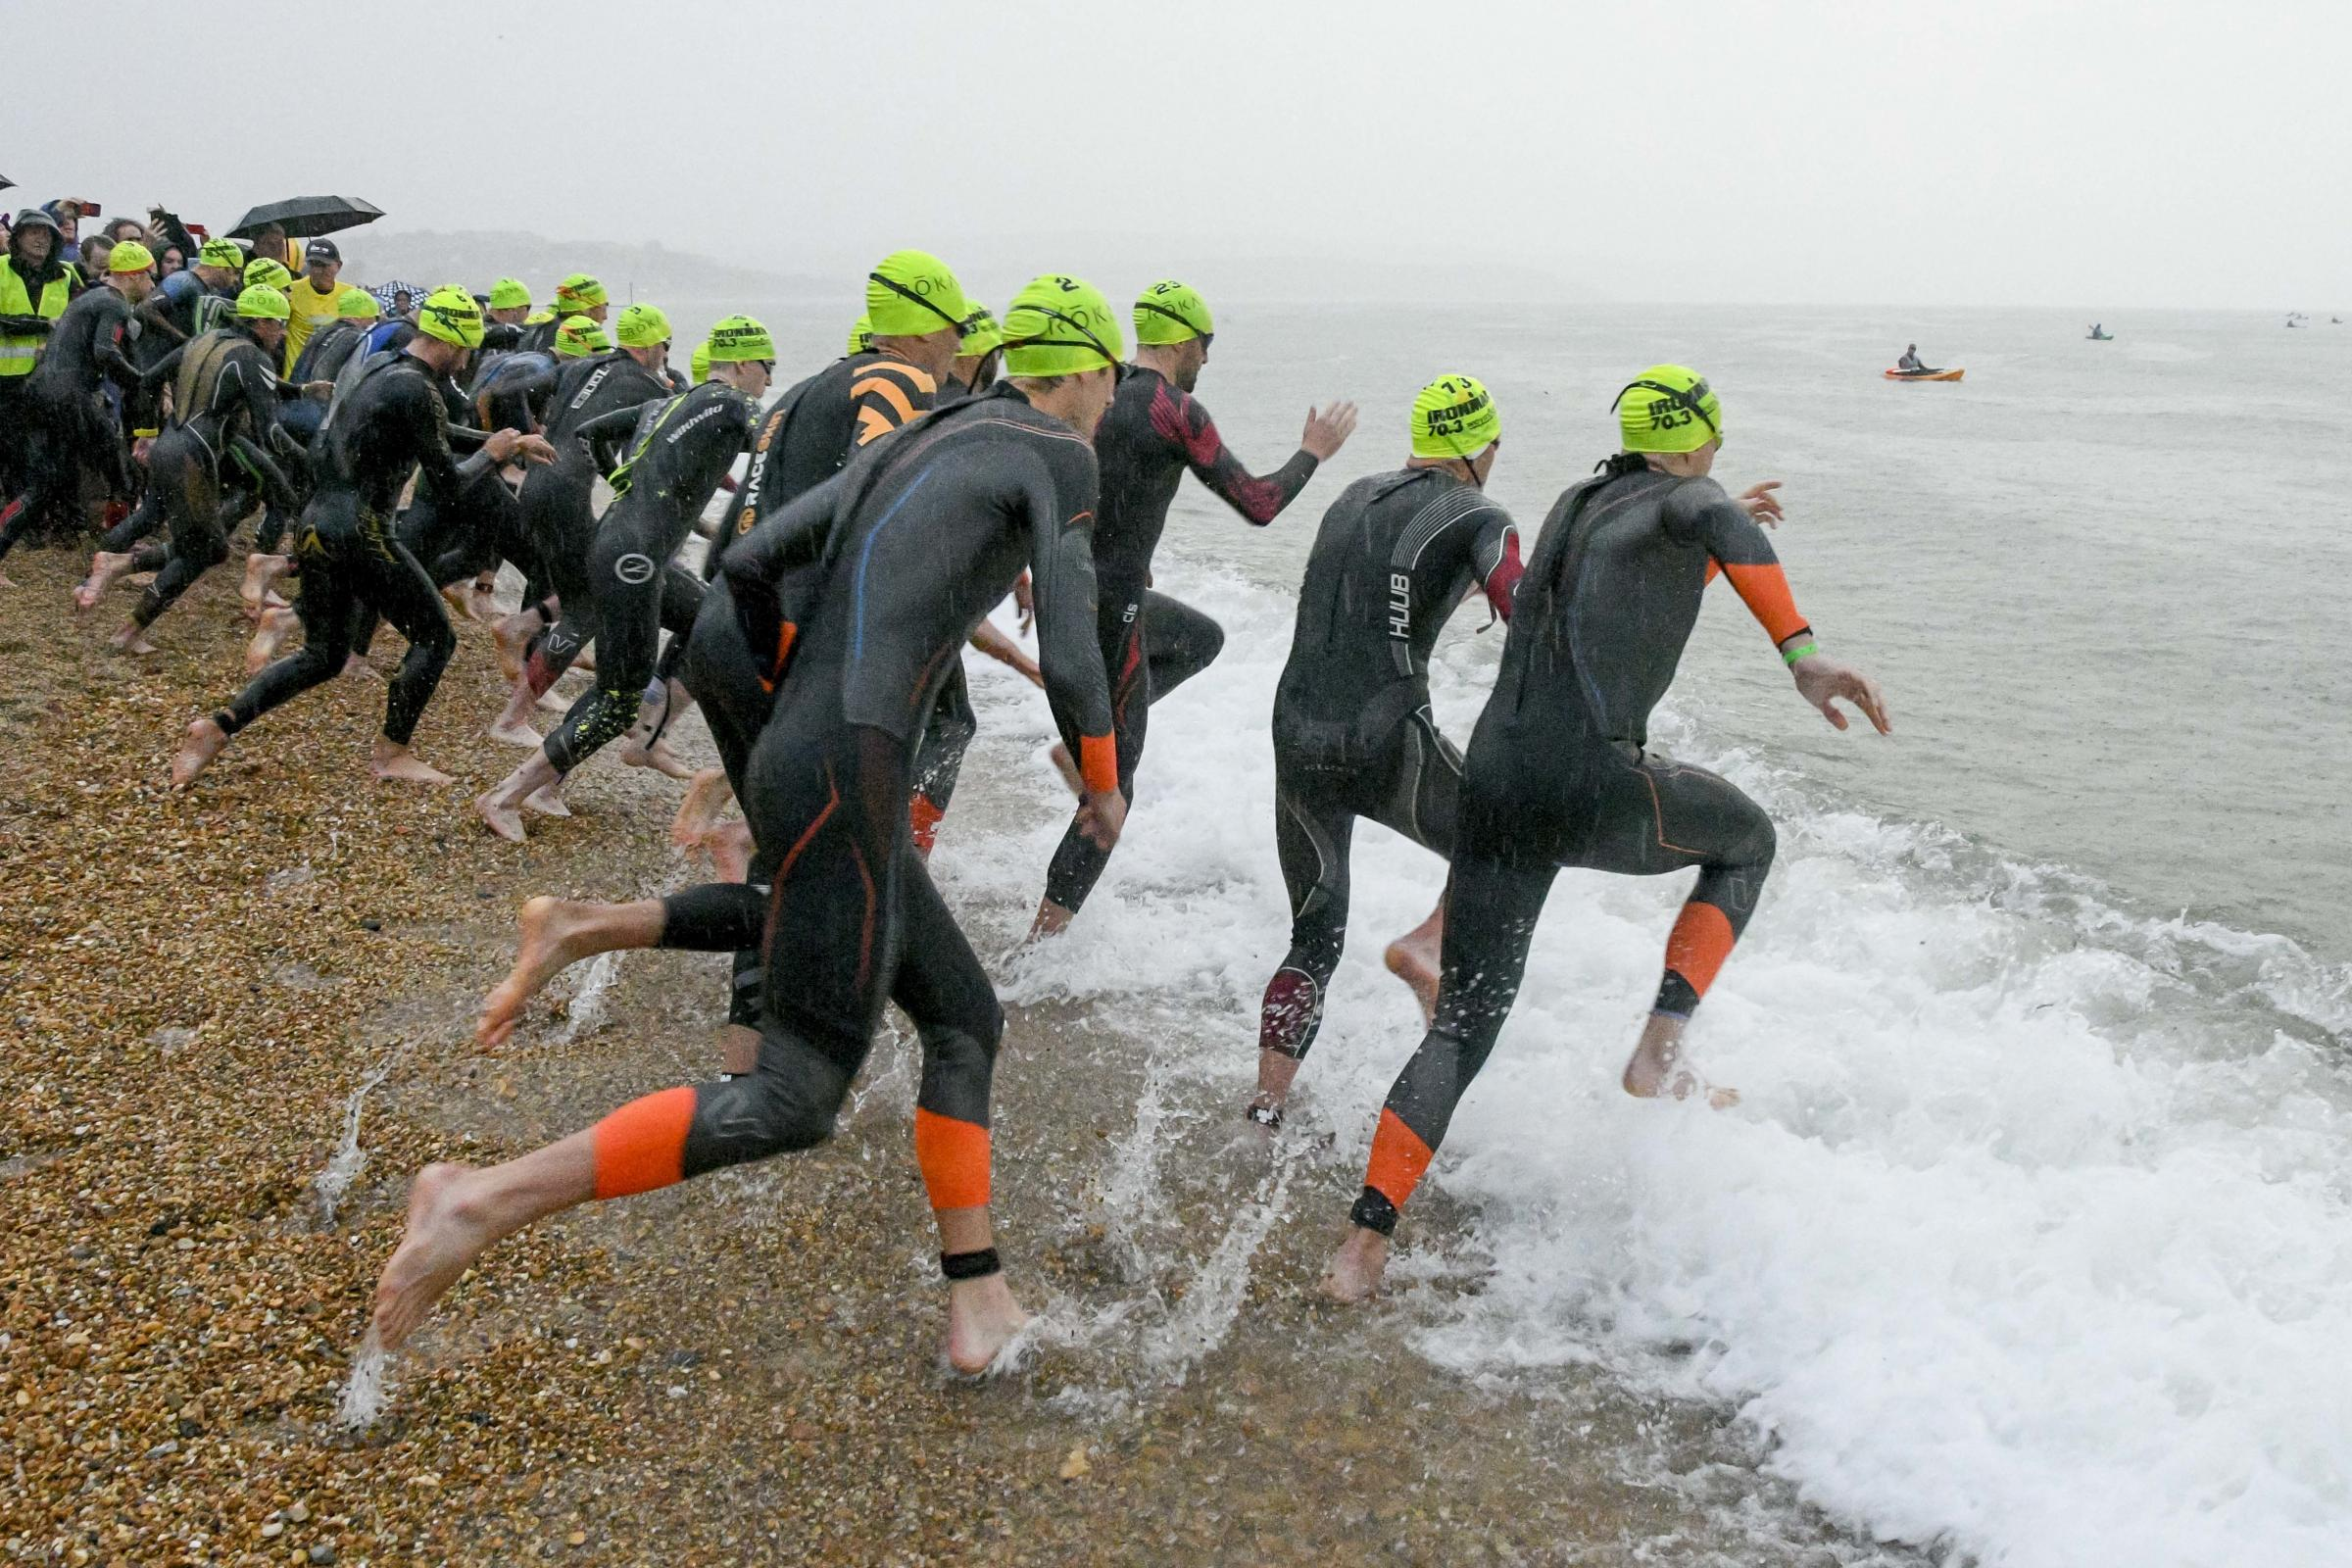 Pictures: Thousands of athletes take part in gruelling Ironman challenge